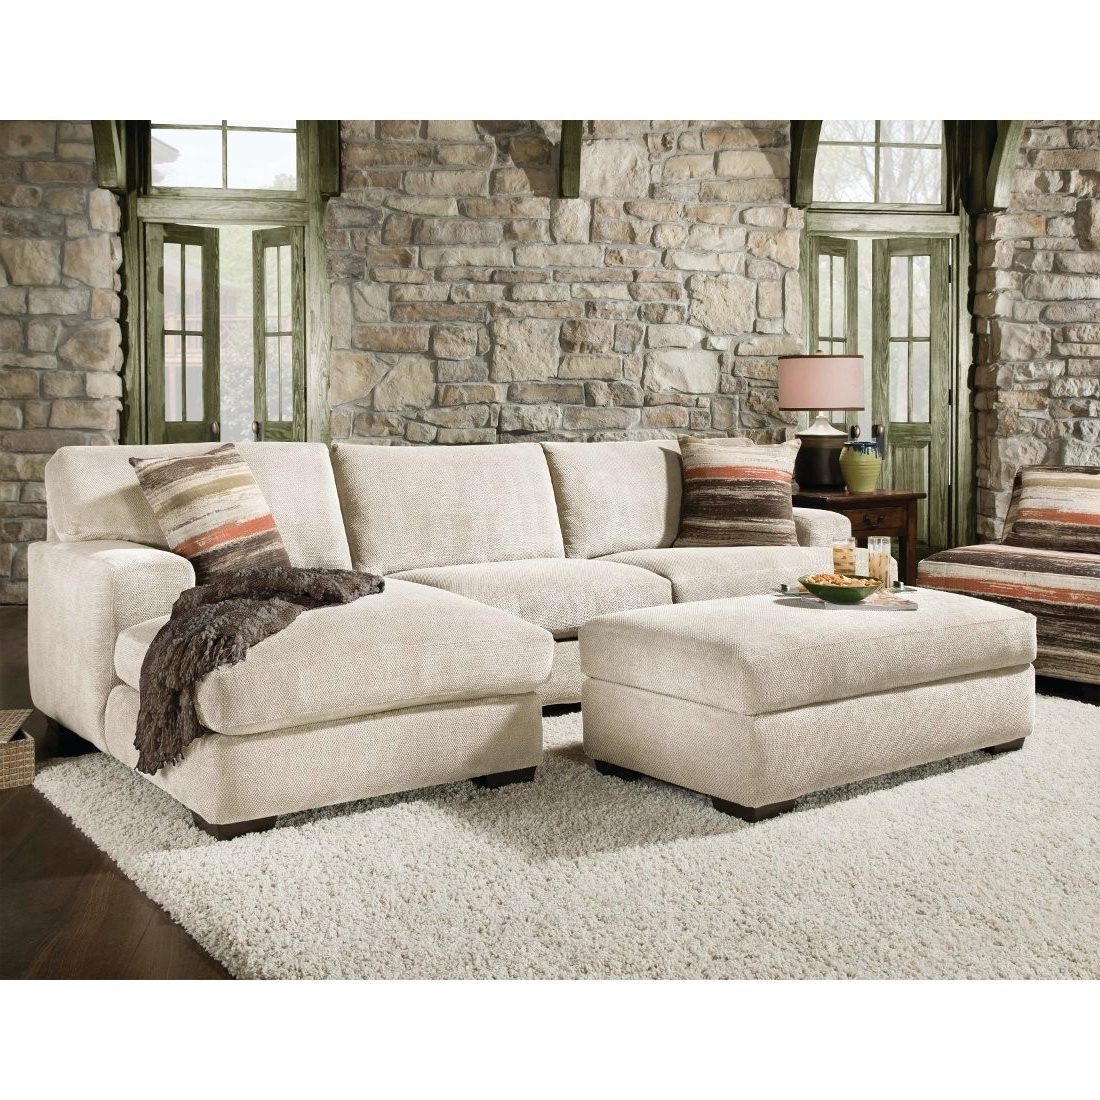 Most Recently Released Cozy Sectional Sofa With Chaise And Ottoman 29 About Remodel Down For Cozy Sectional Sofas (View 5 of 15)